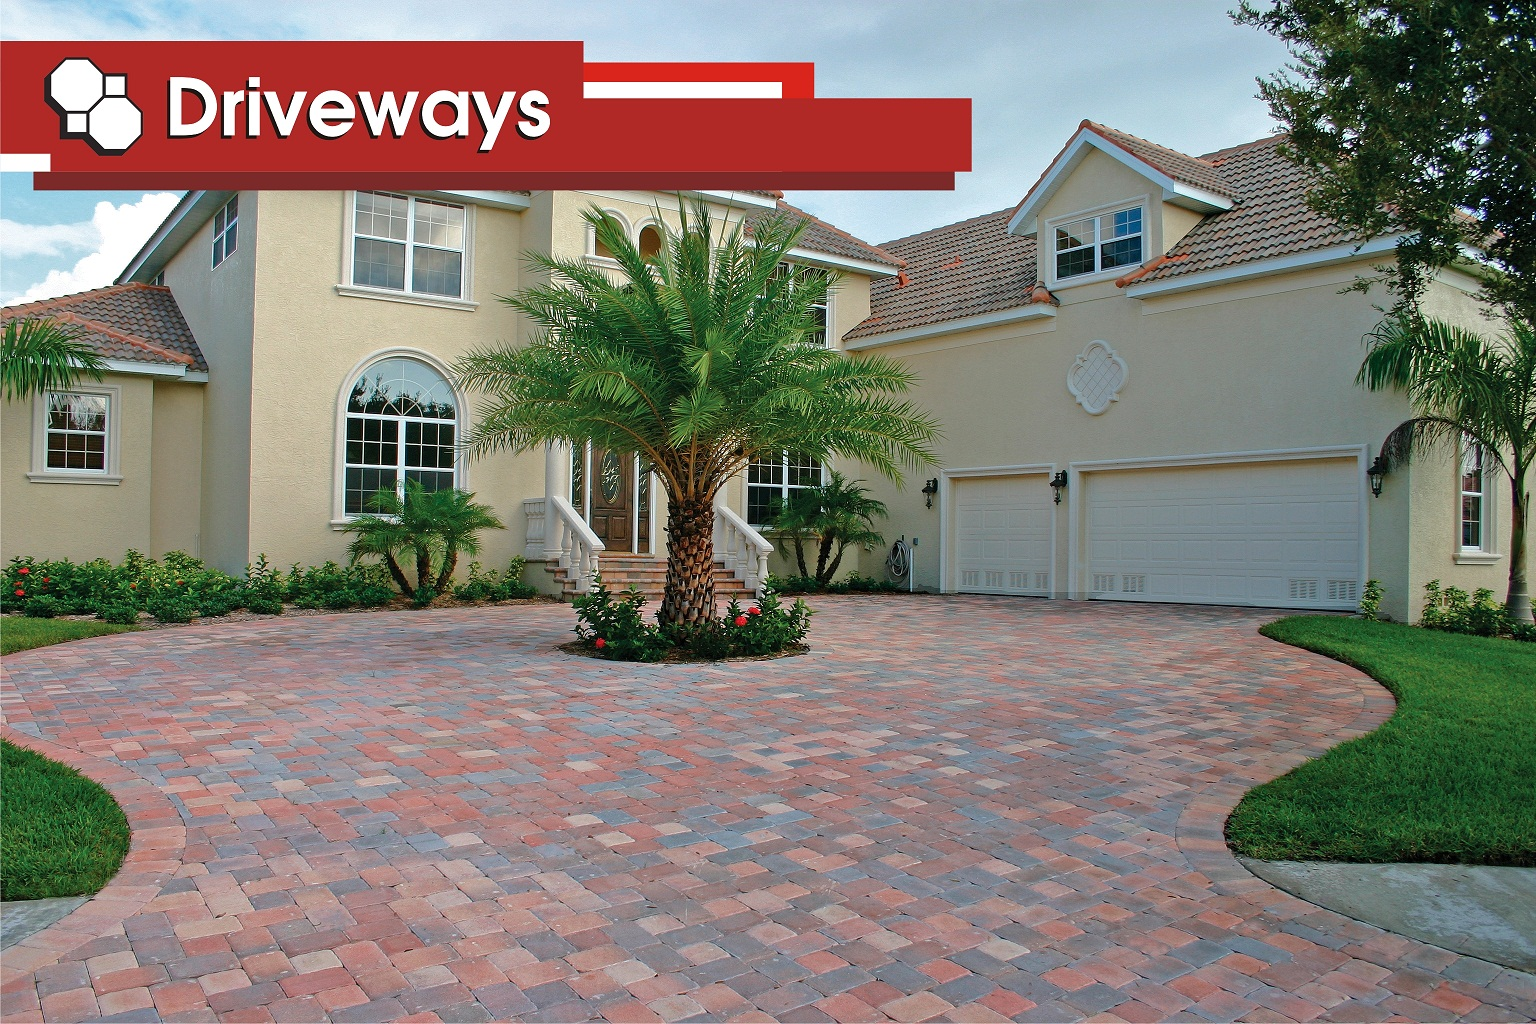 Driveway Remodeling Services by Paving Crew, Inc